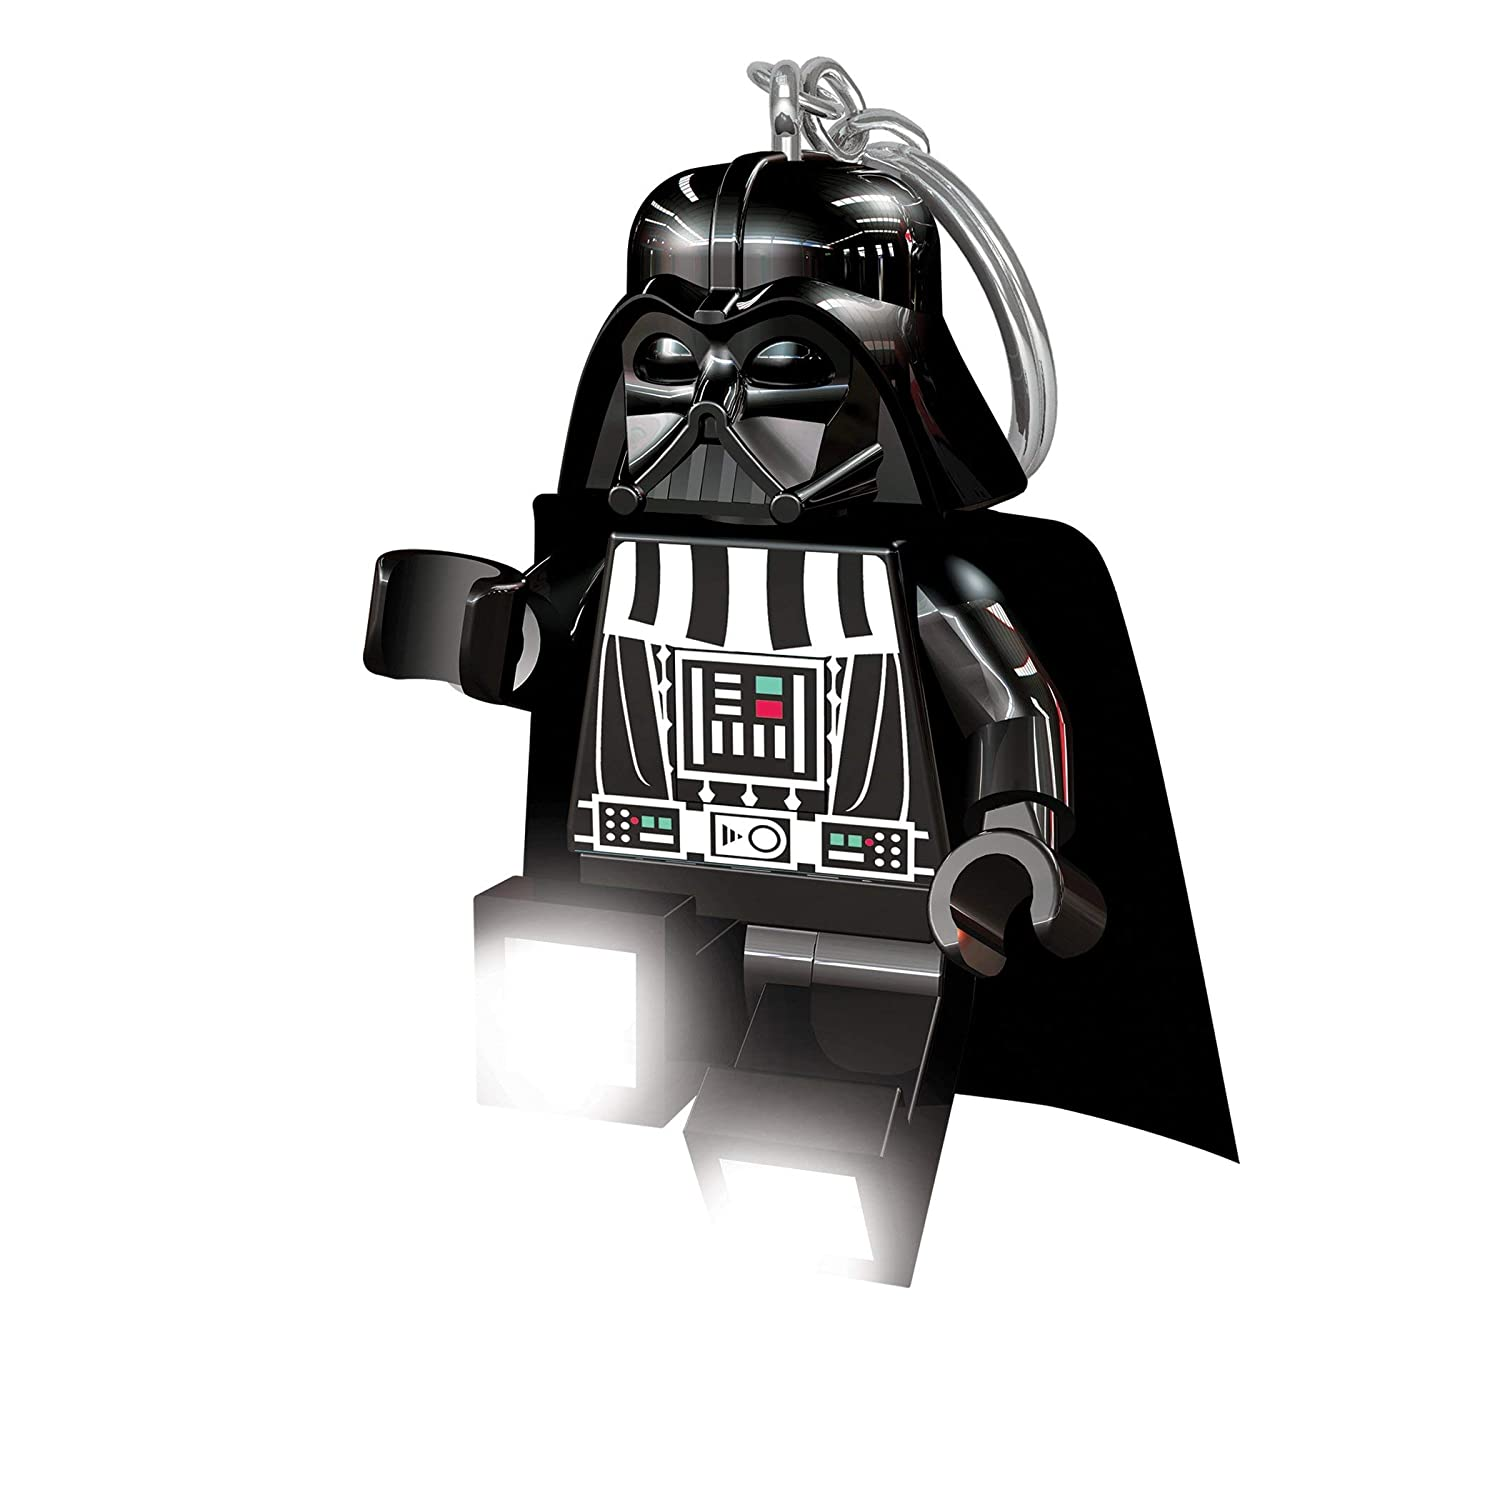 Amazon.com: LEGO Star Wars Darth Vader Key Light: Santoki ...